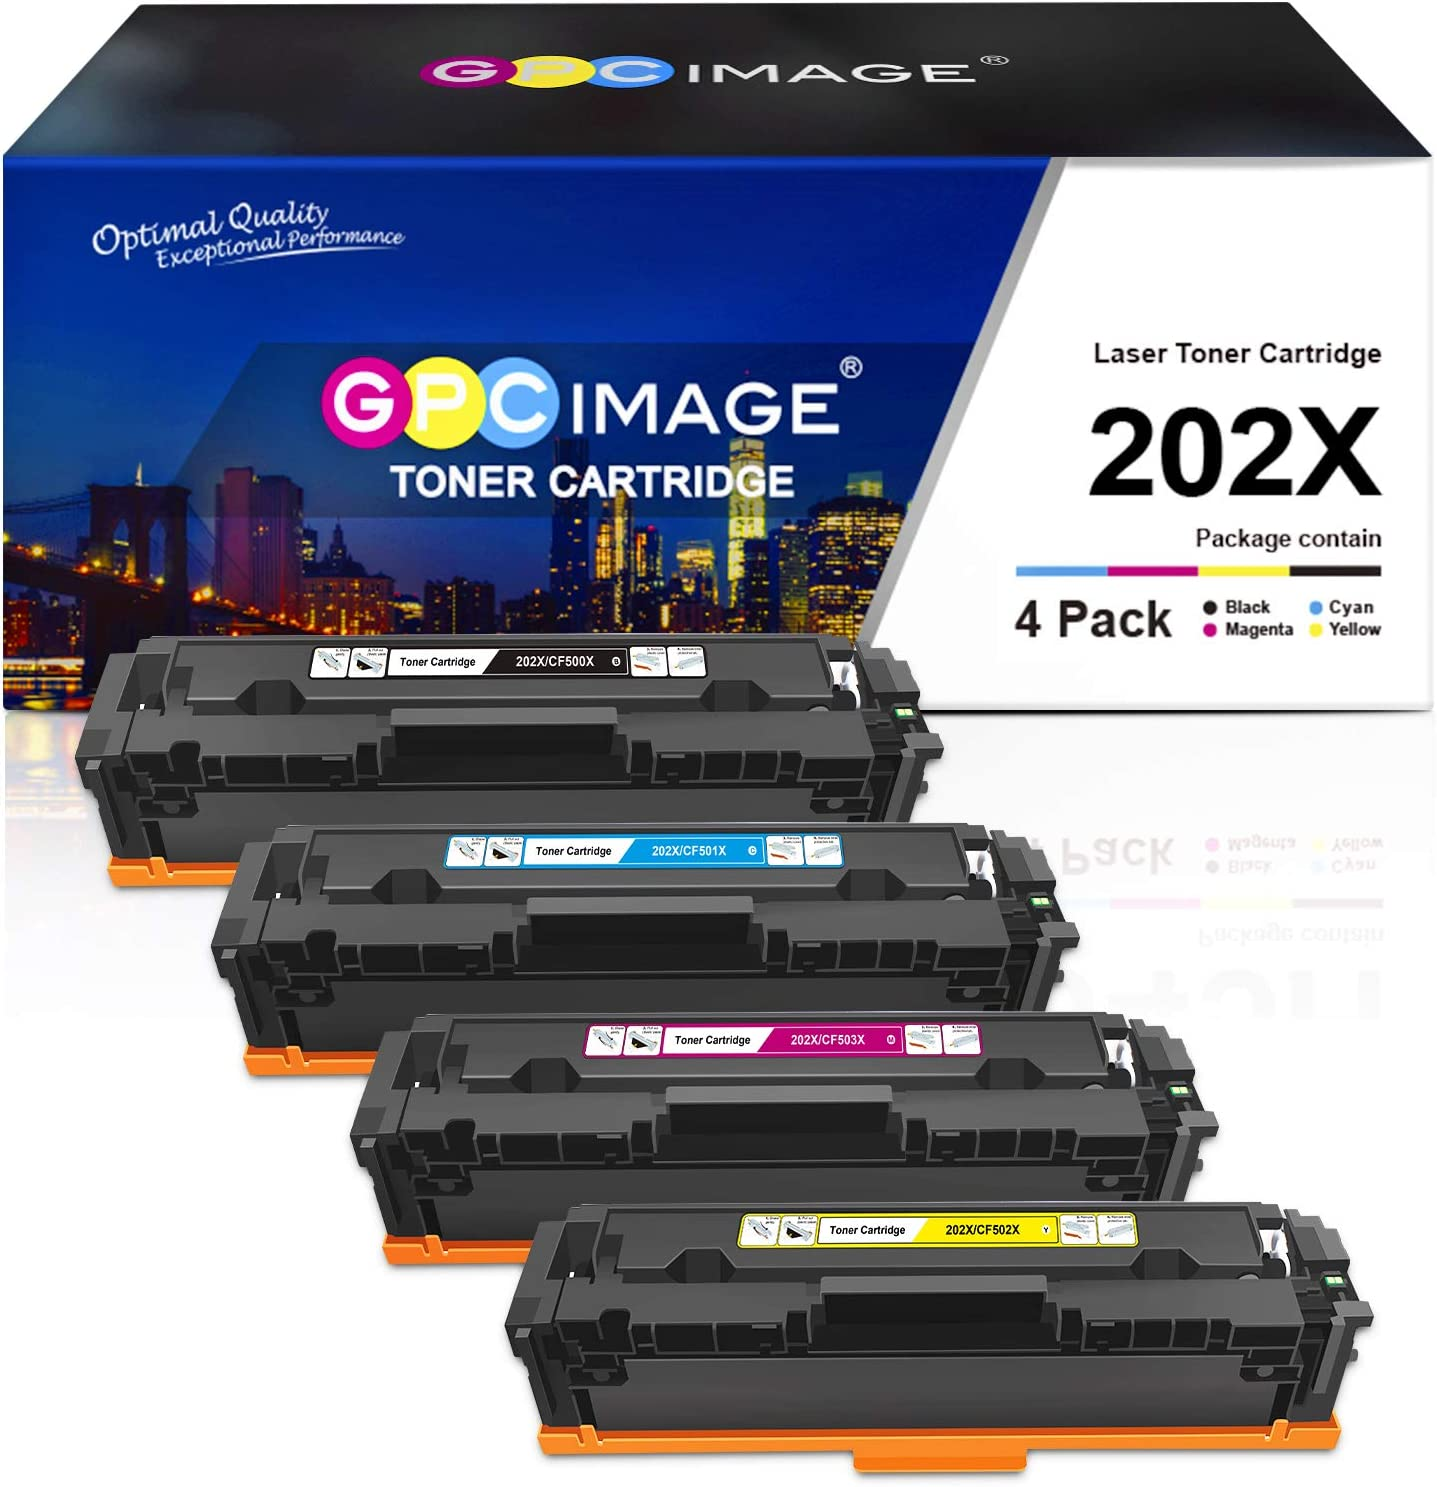 GPC Image Compatible Toner Cartridge Replacement for HP 202X 202A CF500X CF500A to use with Laserjet Pro MFP M281fdw M254dw M281cdw M281 M281dw M280nw Toner Printer (Black, Cyan, Magenta, Yellow)